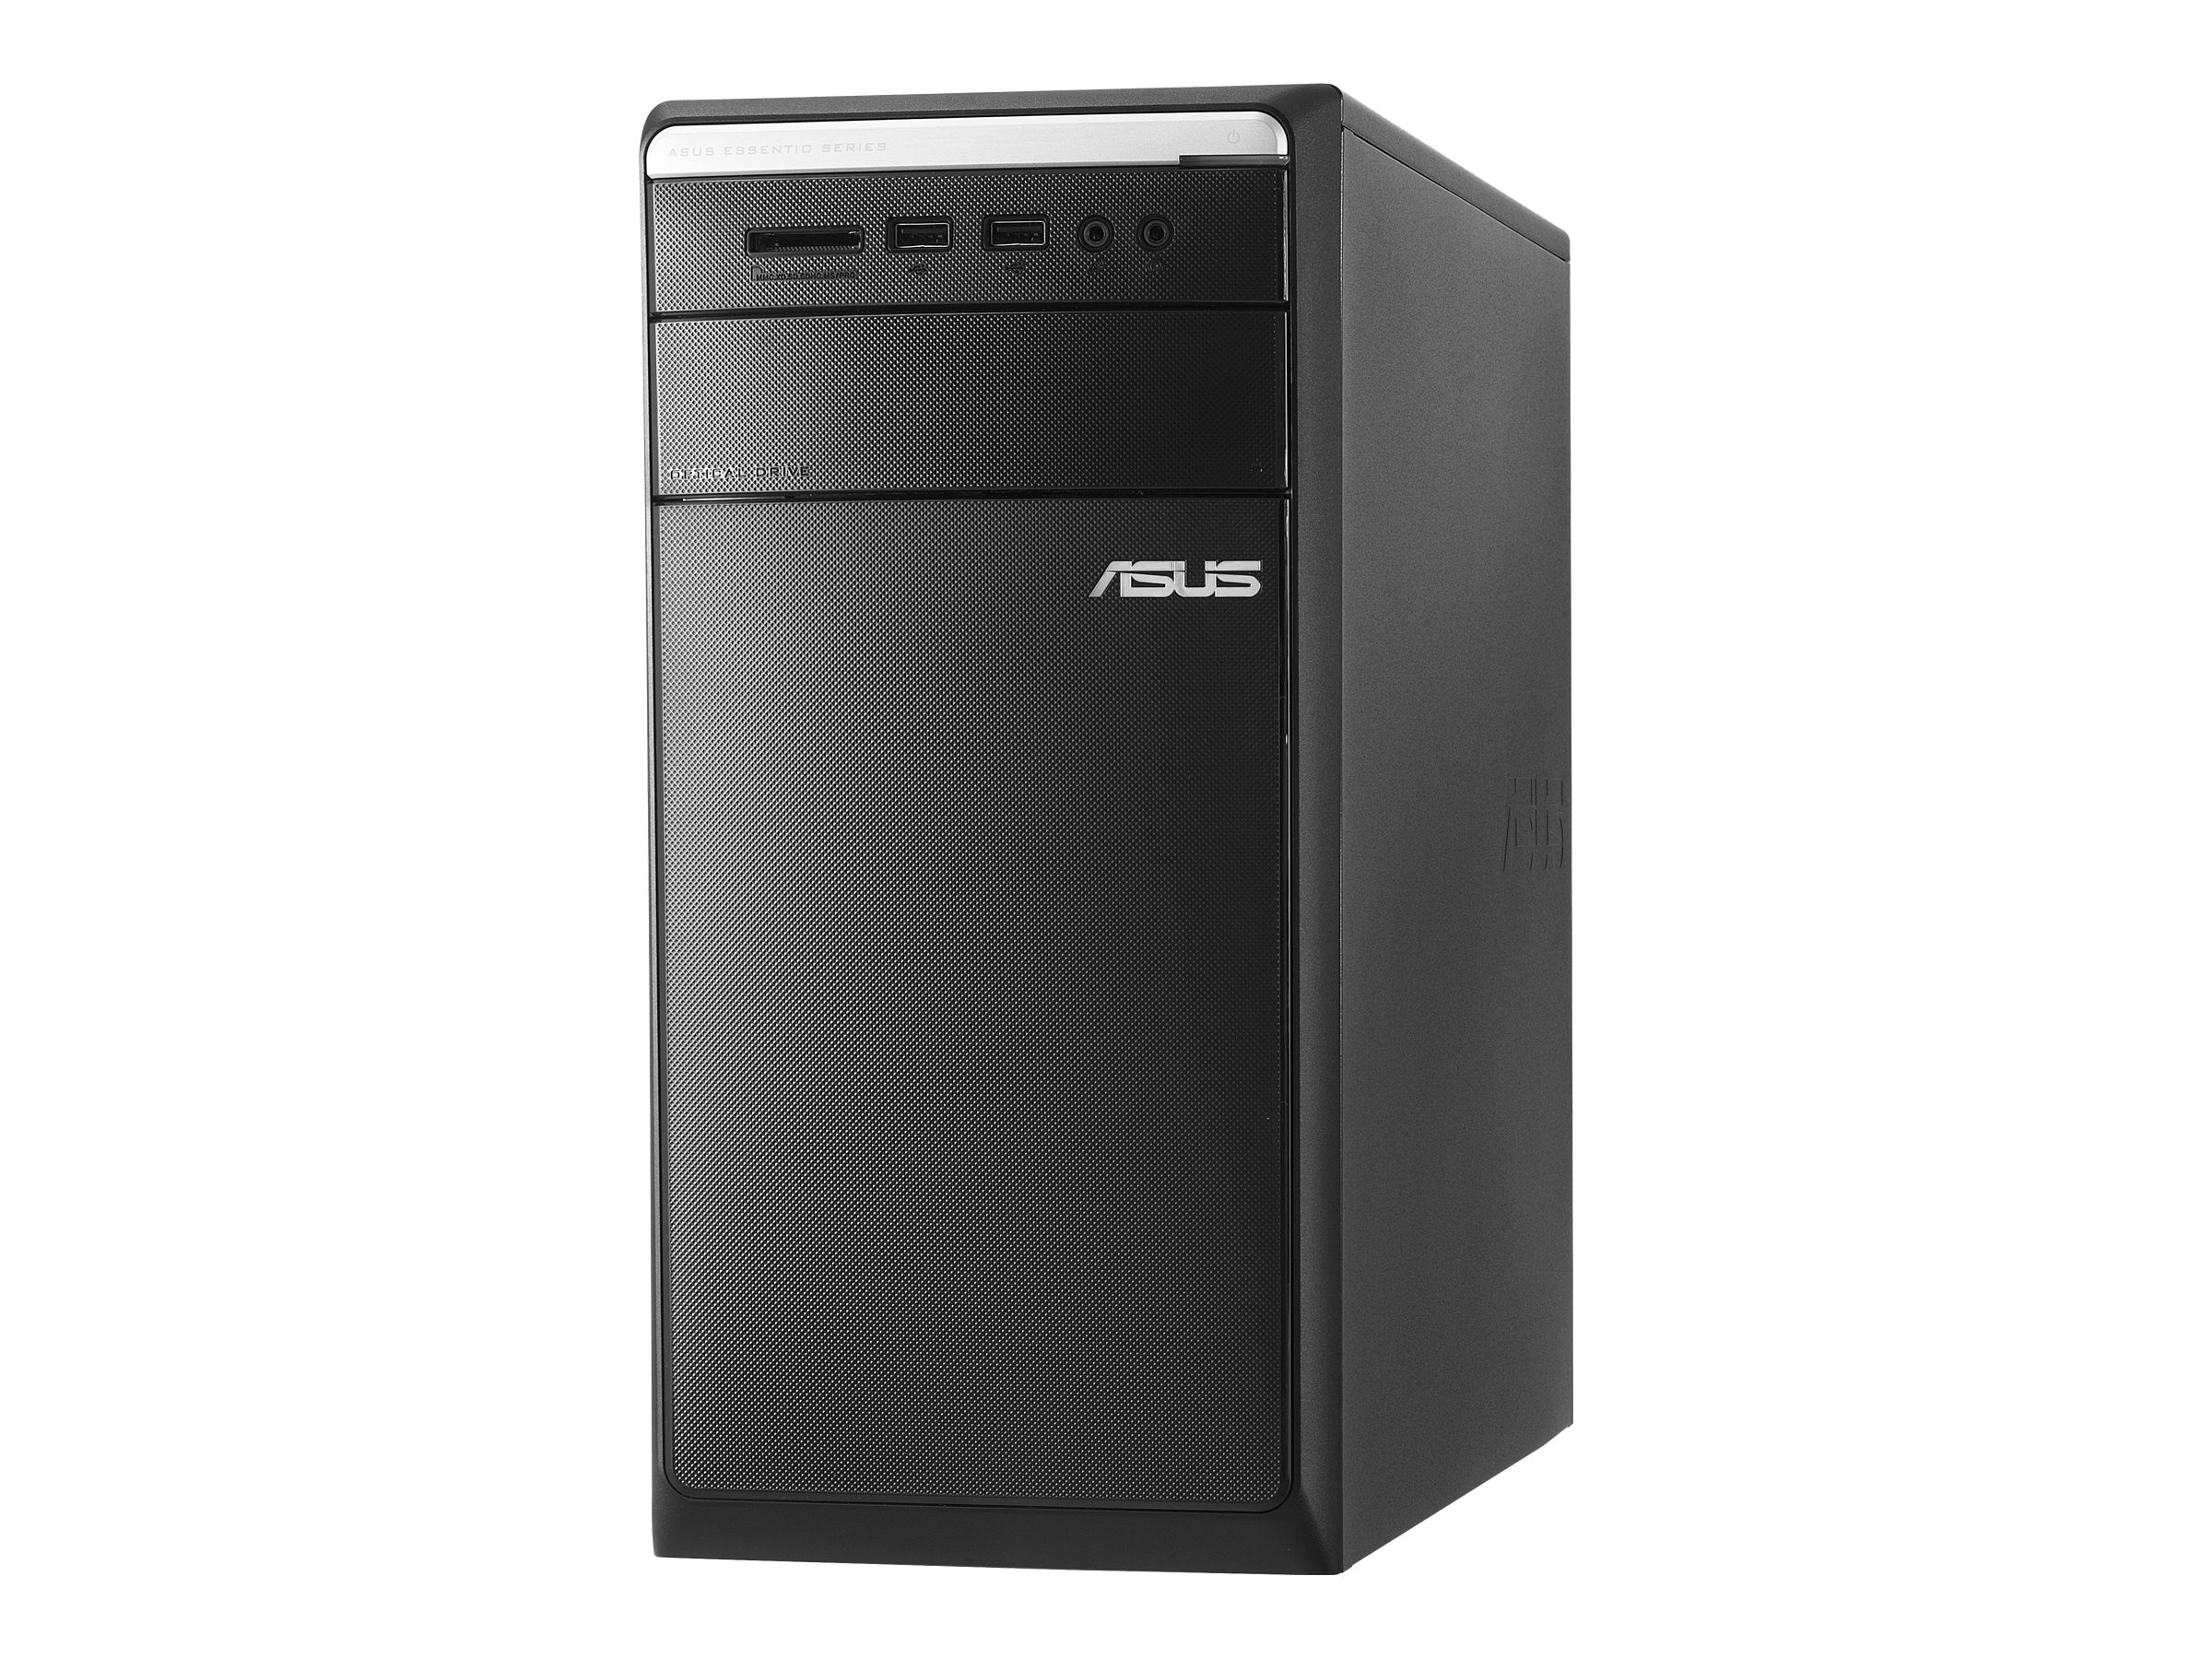 Asus Desktop PC A8-6500 W8, M11BB-US009S, 16167067, Desktops